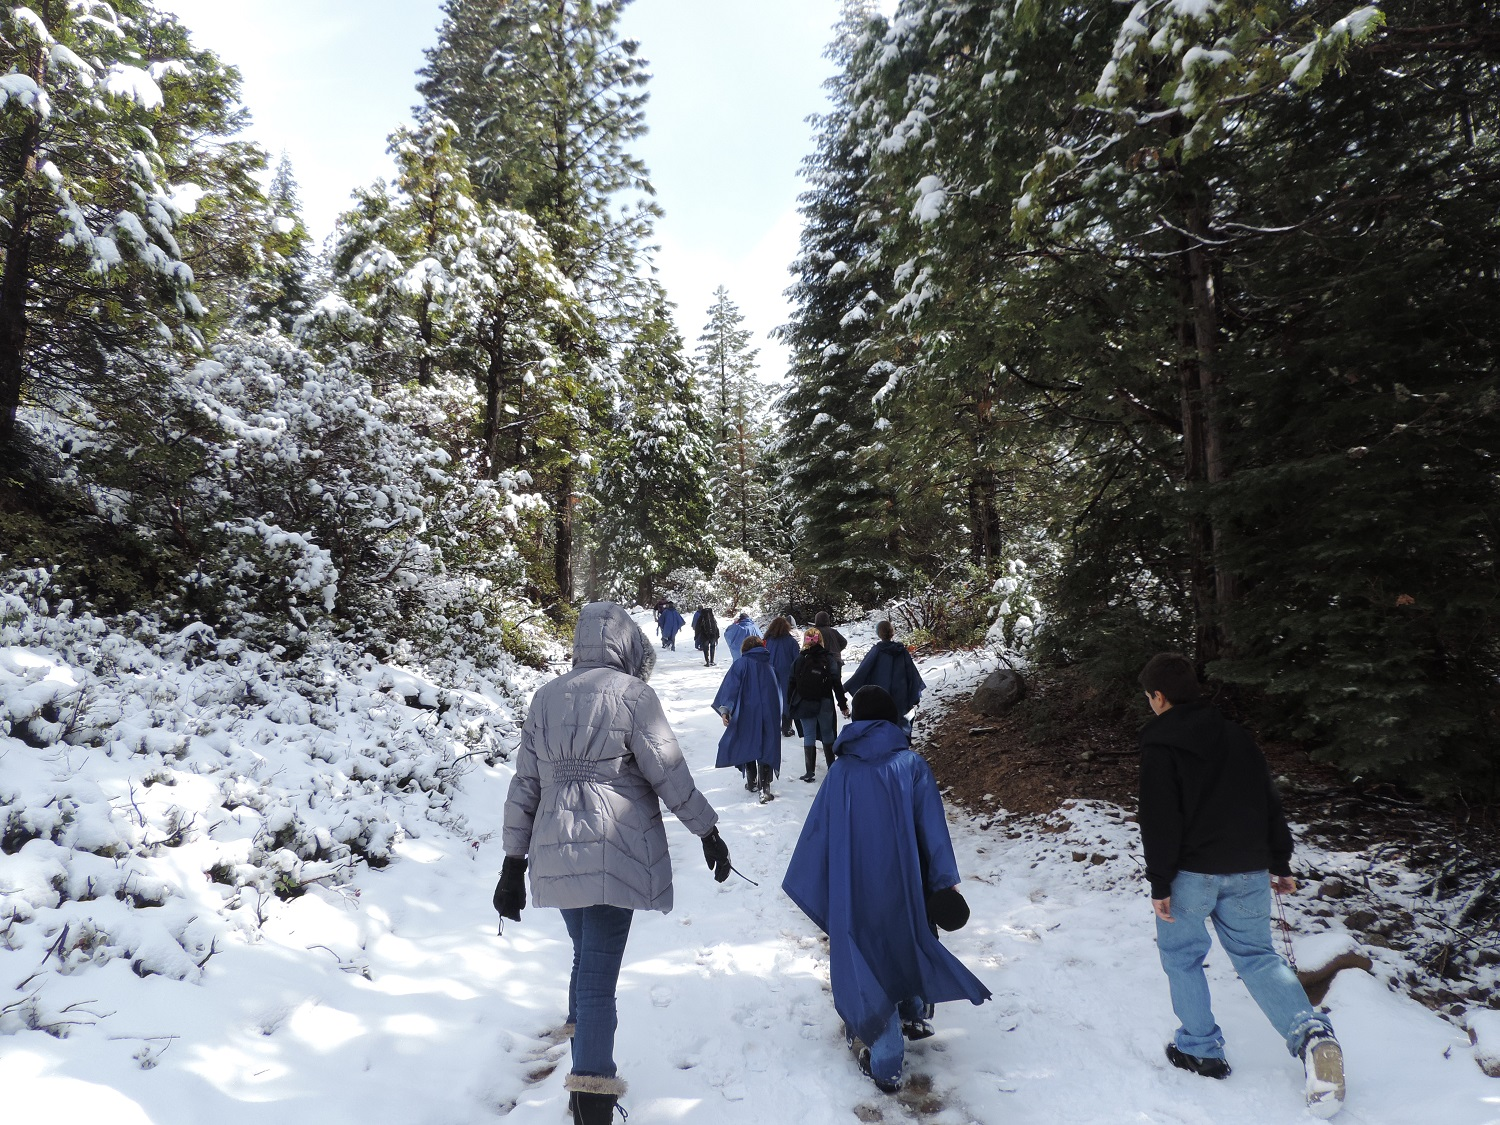 Green Meadows 2014 - Walking away in the snow - photos courtesy of Ronda Clarke